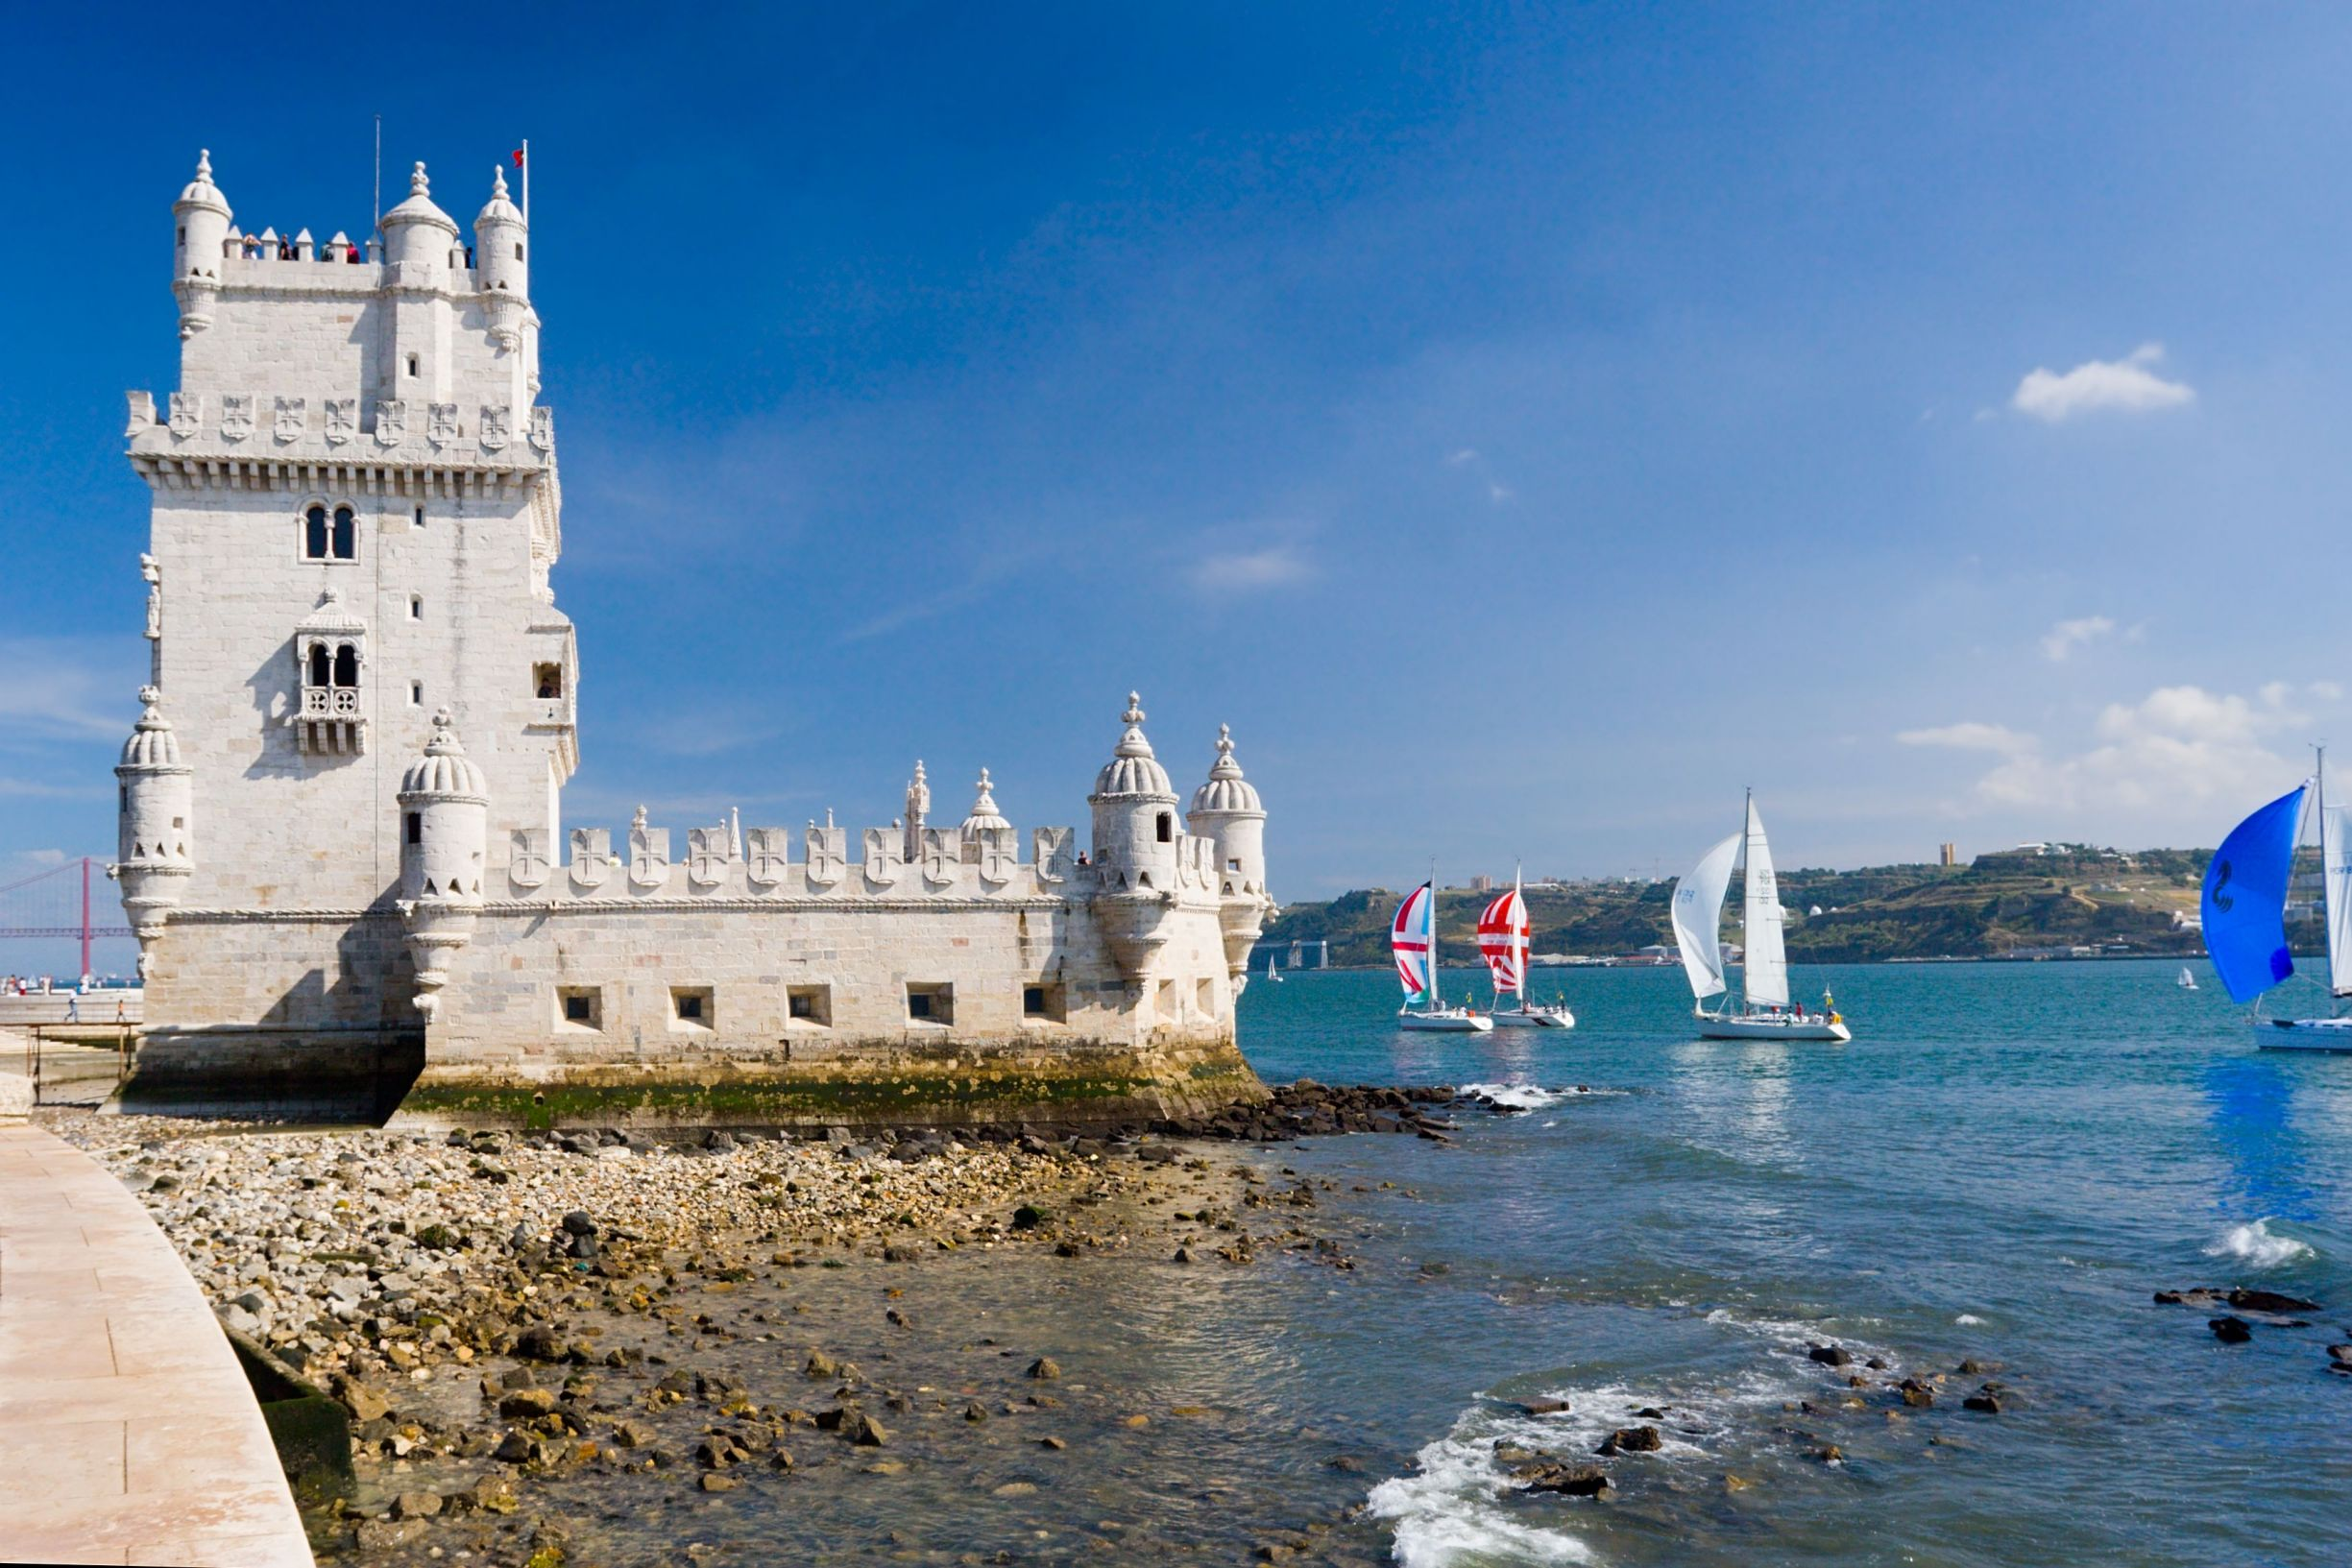 Belem Tower on the Tagus River, Lisbon, Portugal